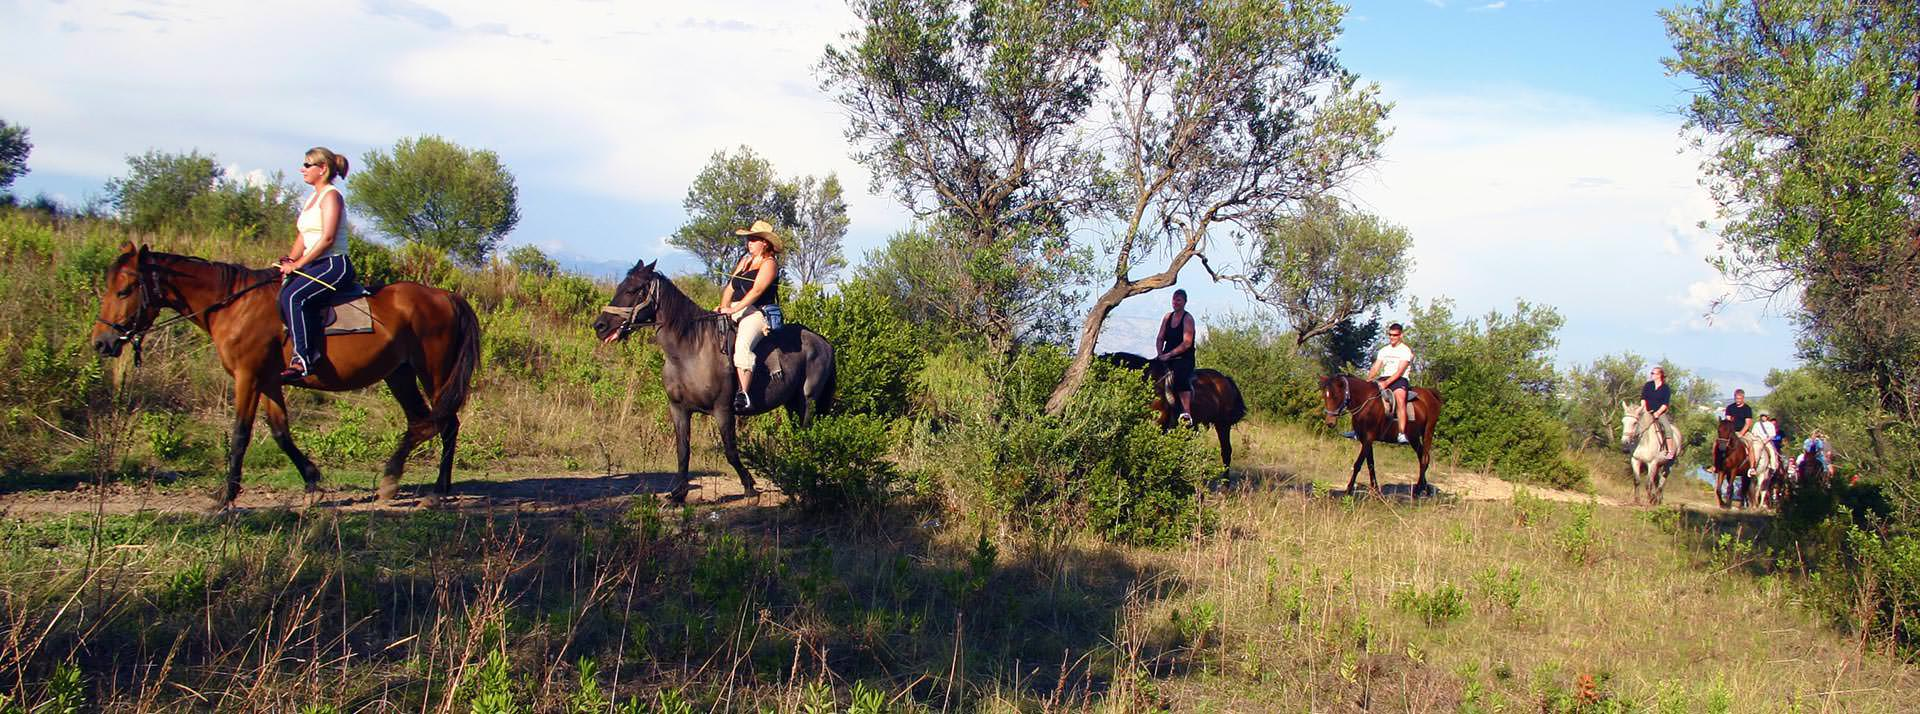 Horse riding in Roda north Corfu